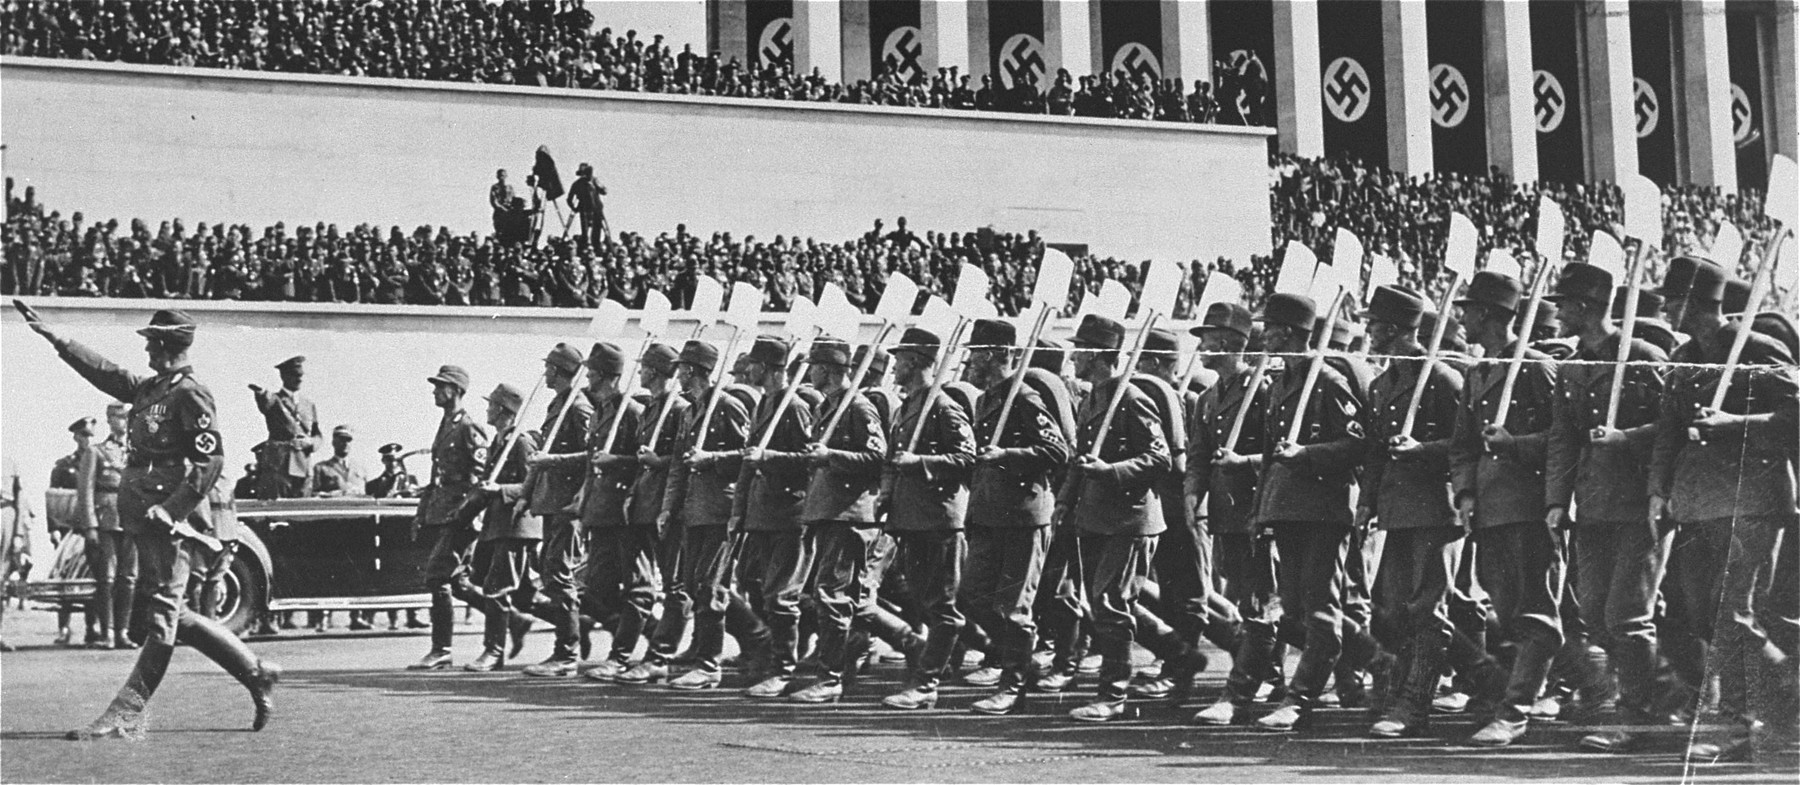 Adolf Hitler reviews units of the Reichsarbeitsdienst (RAD: Reich Labor Service) as they march past his car on the Zeppelinfeld during a Reichsparteitag (Reich Party Day) rally in Nuremberg.